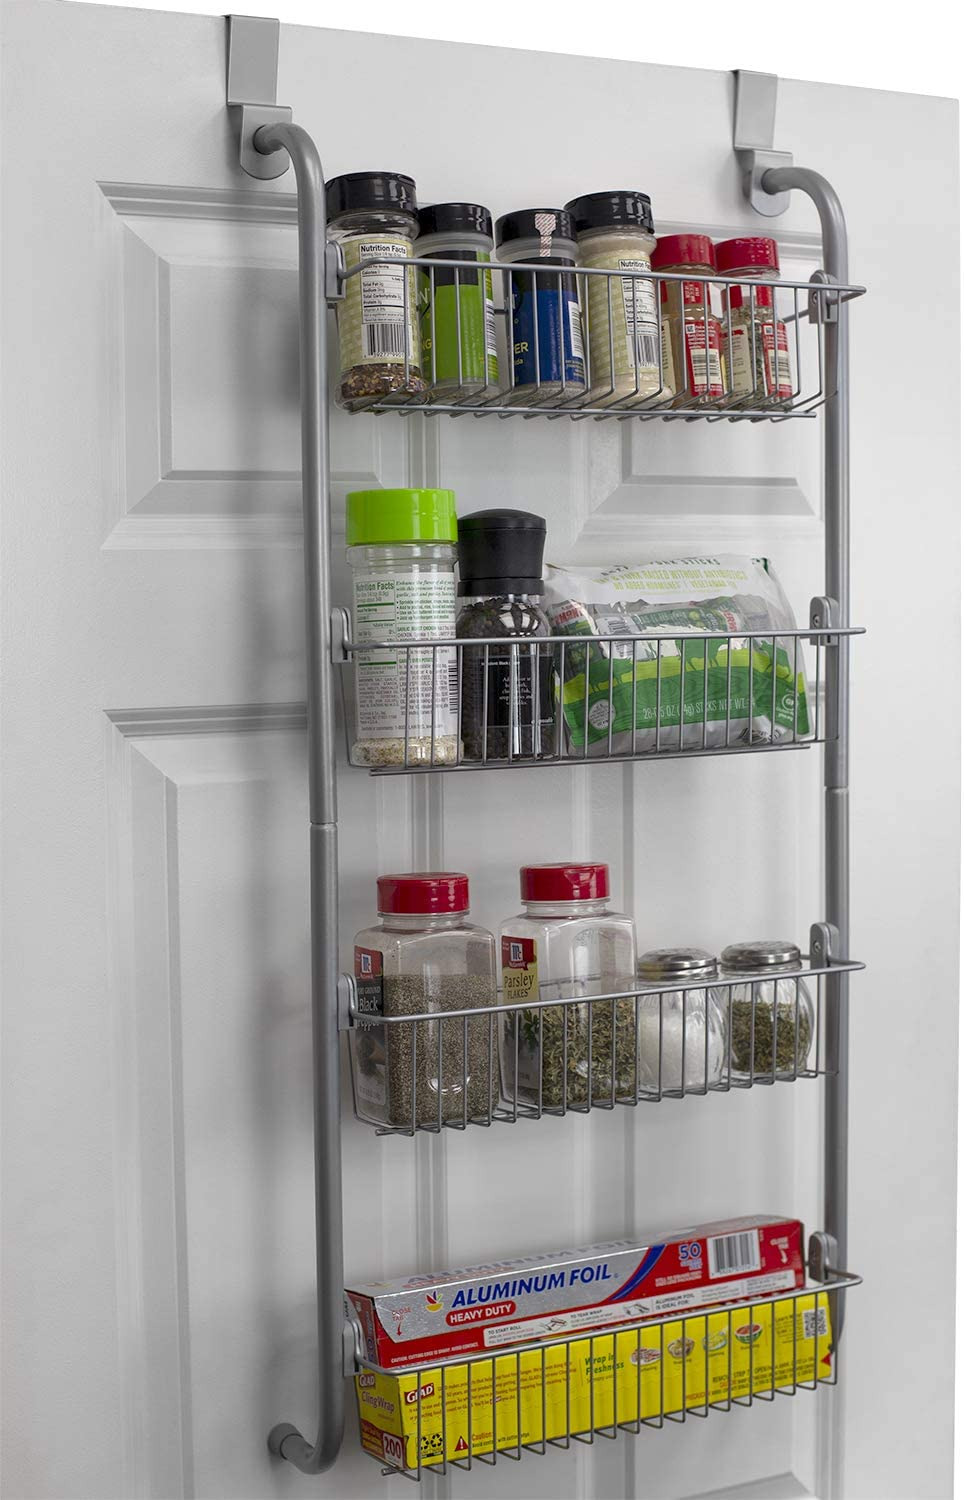 Over the Door Storage Cabinet Beautiful Home Basics Bh Heavy Duty 4 Tier Over the Door Storage Shelf Hanging Cabinet Metal Pantry Rack organizer Spice Space Grey Gray